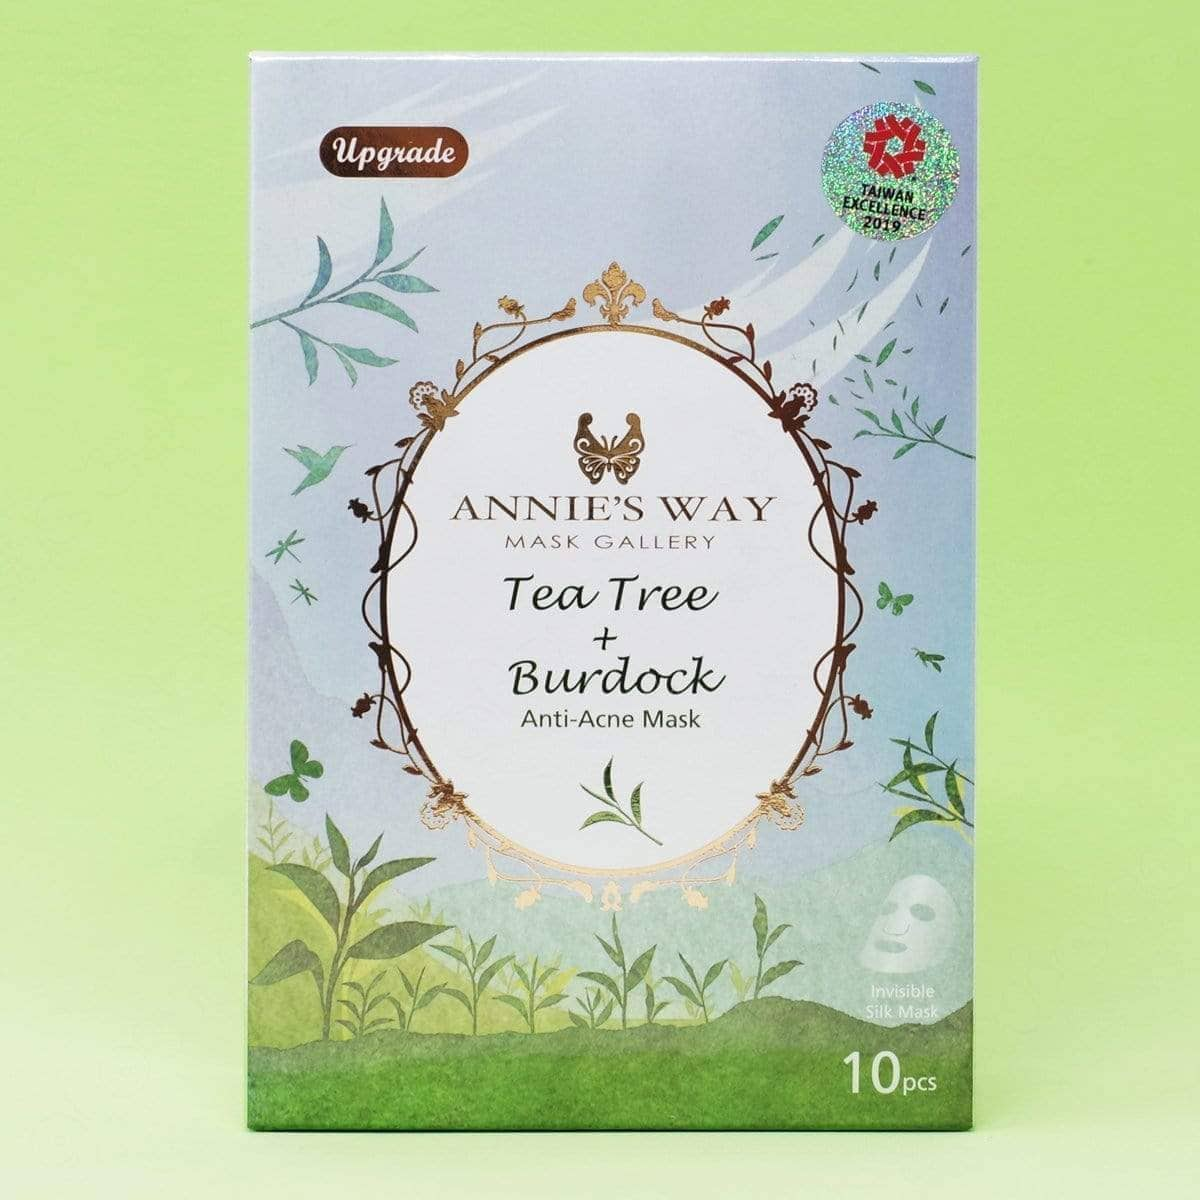 Annie's Way Tea Tree + Burdock Anti-Acne Sheet Mask